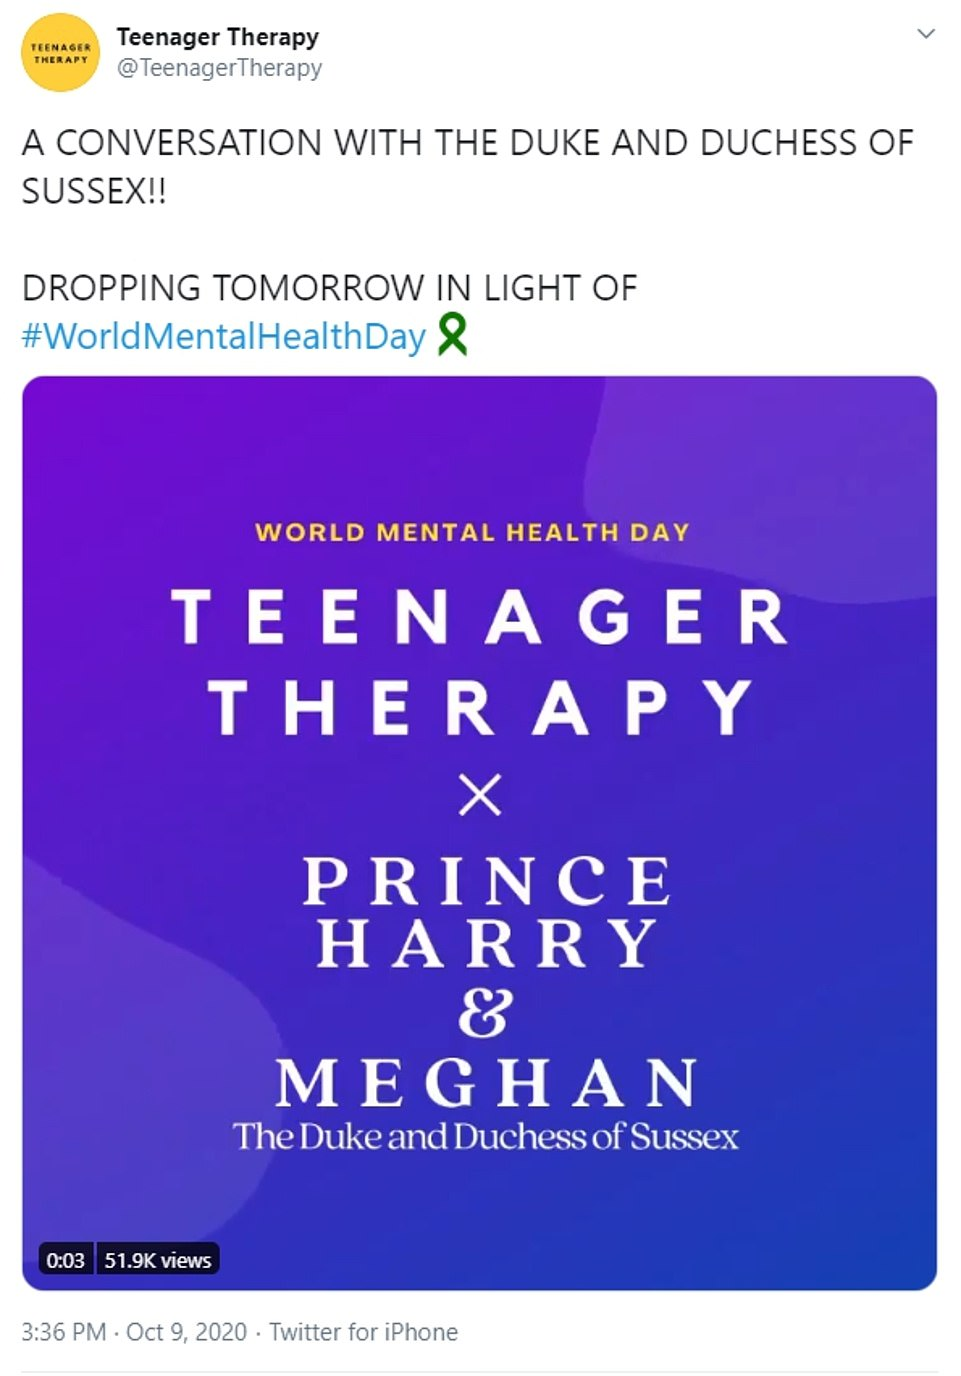 The Teenager Therapy podcast Twitter account shared this tweet ahead of the podcast going live today